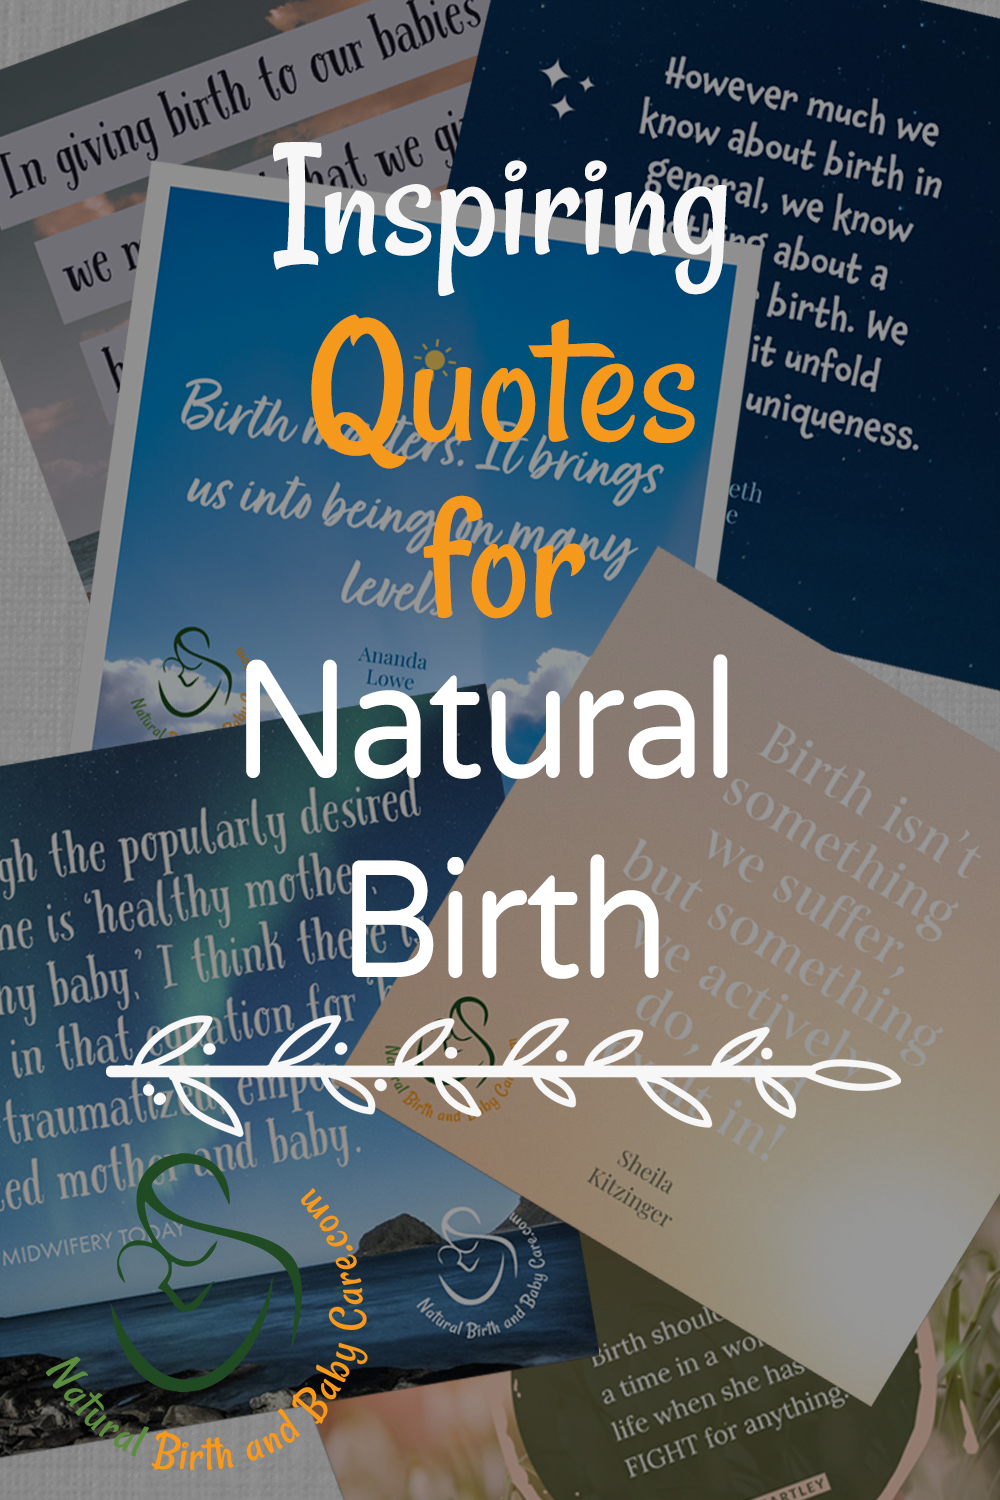 Inspiring Quotes for Giving Birth Naturally